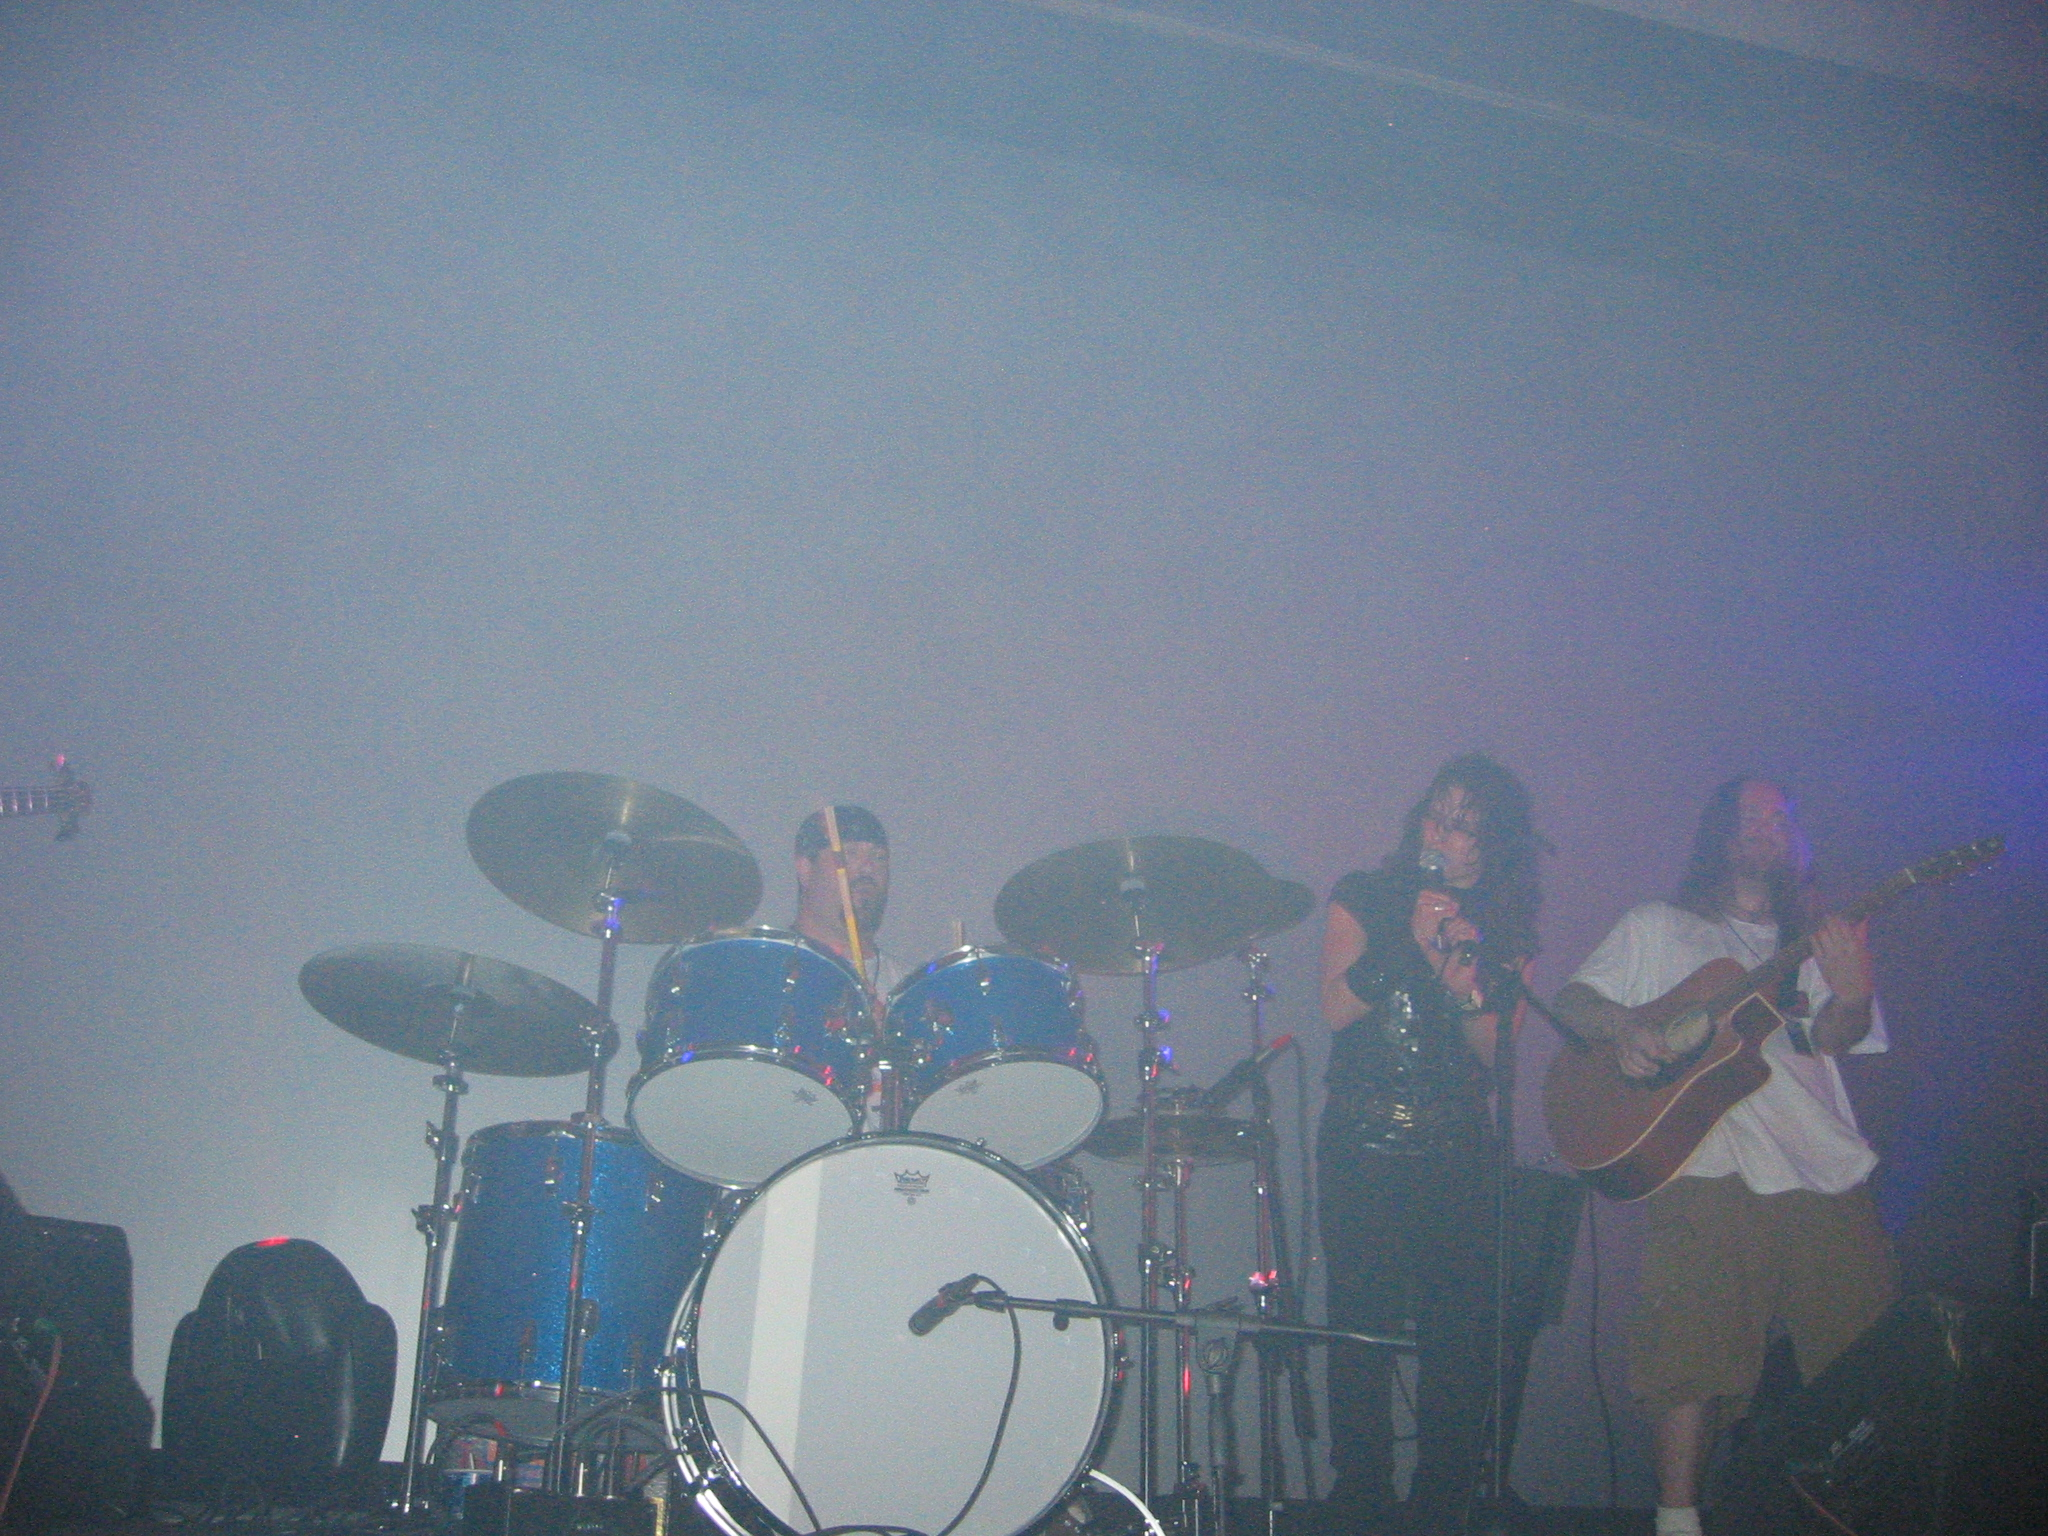 Covenigma with Square Wave Trio - June 2007